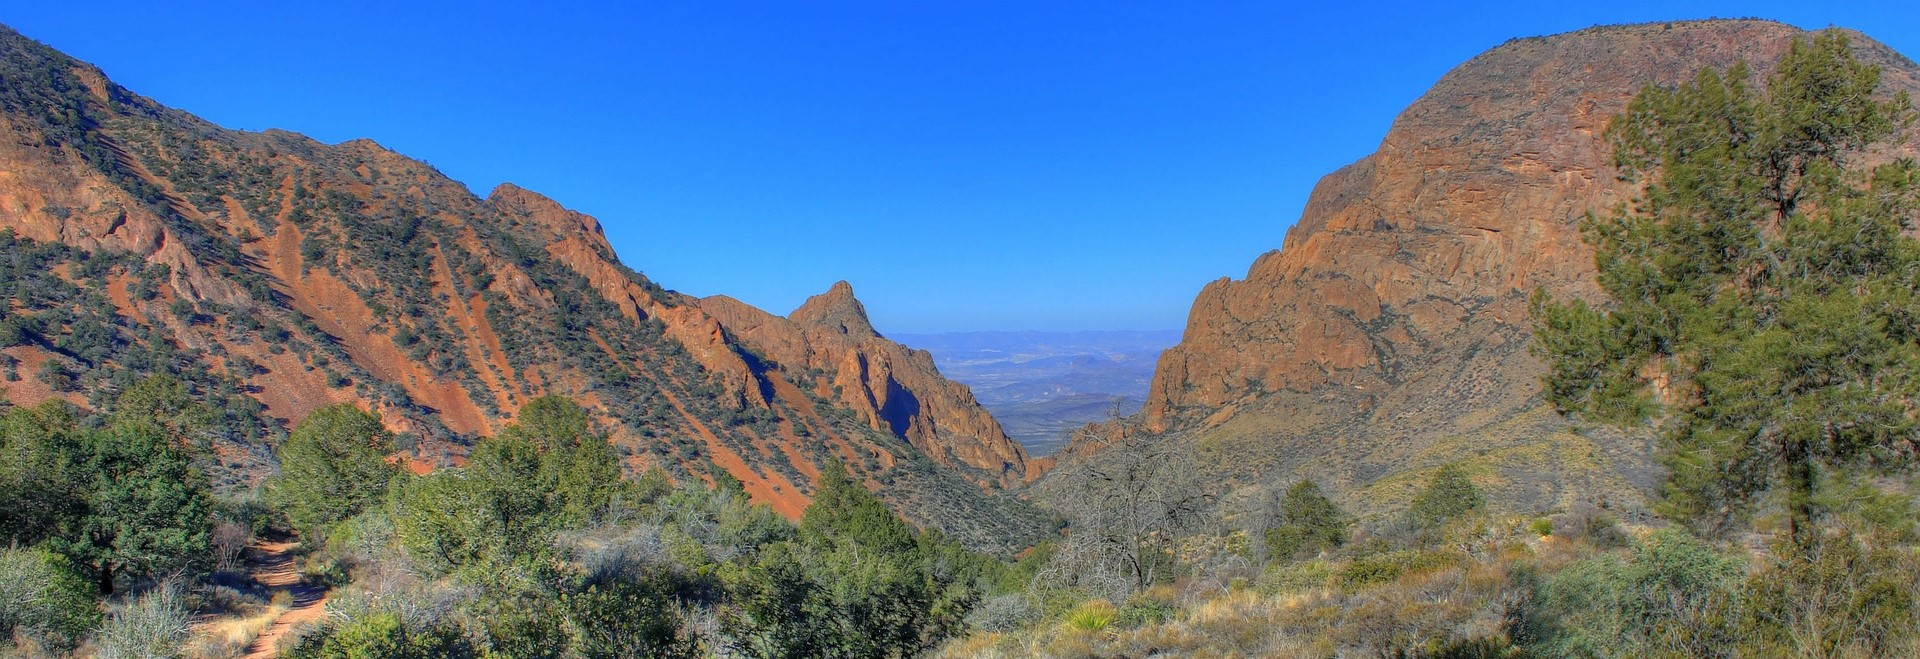 The Big Bend National Park in Texas | Breast Cancer Car Donations